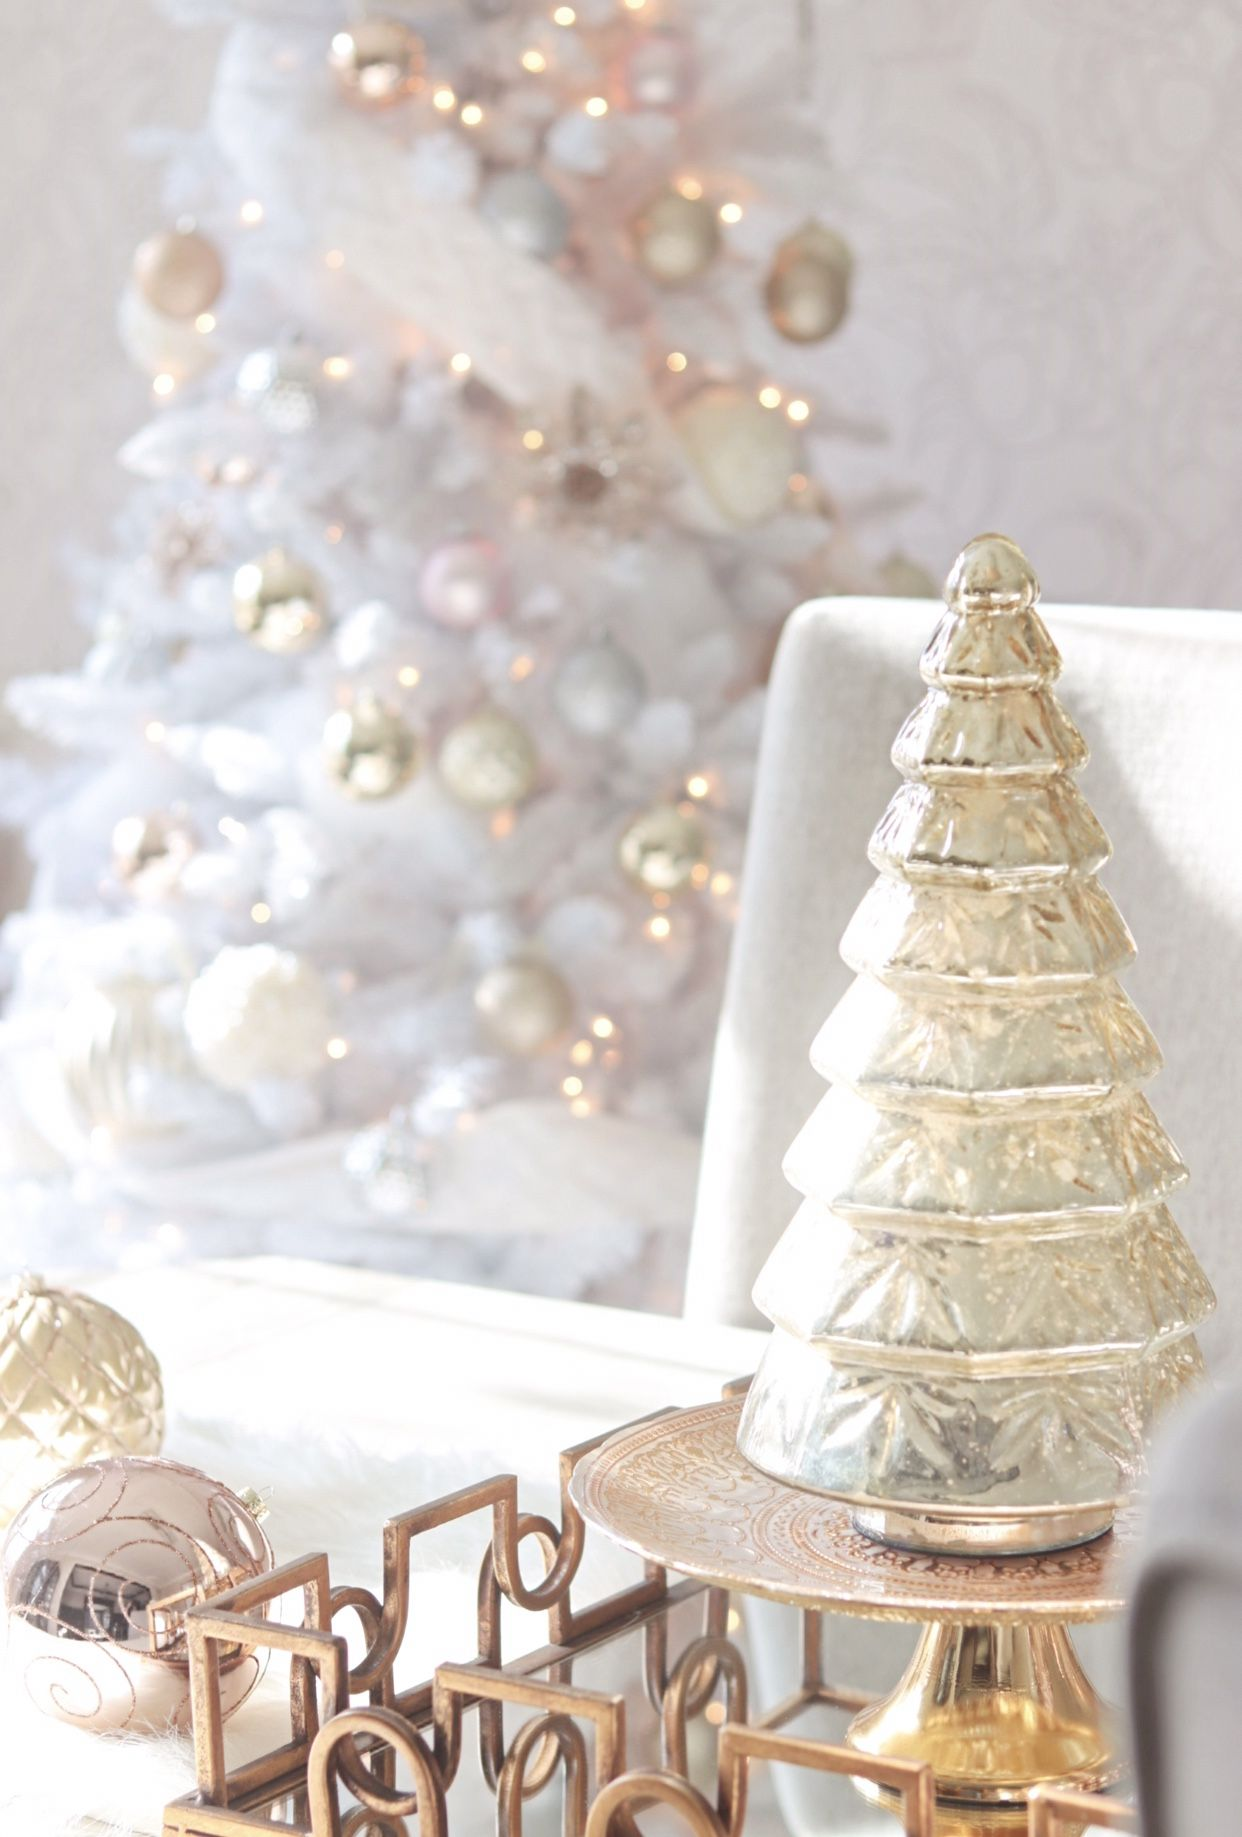 Pin by 💗Emily💗 on Winter and Christmas Pinterest